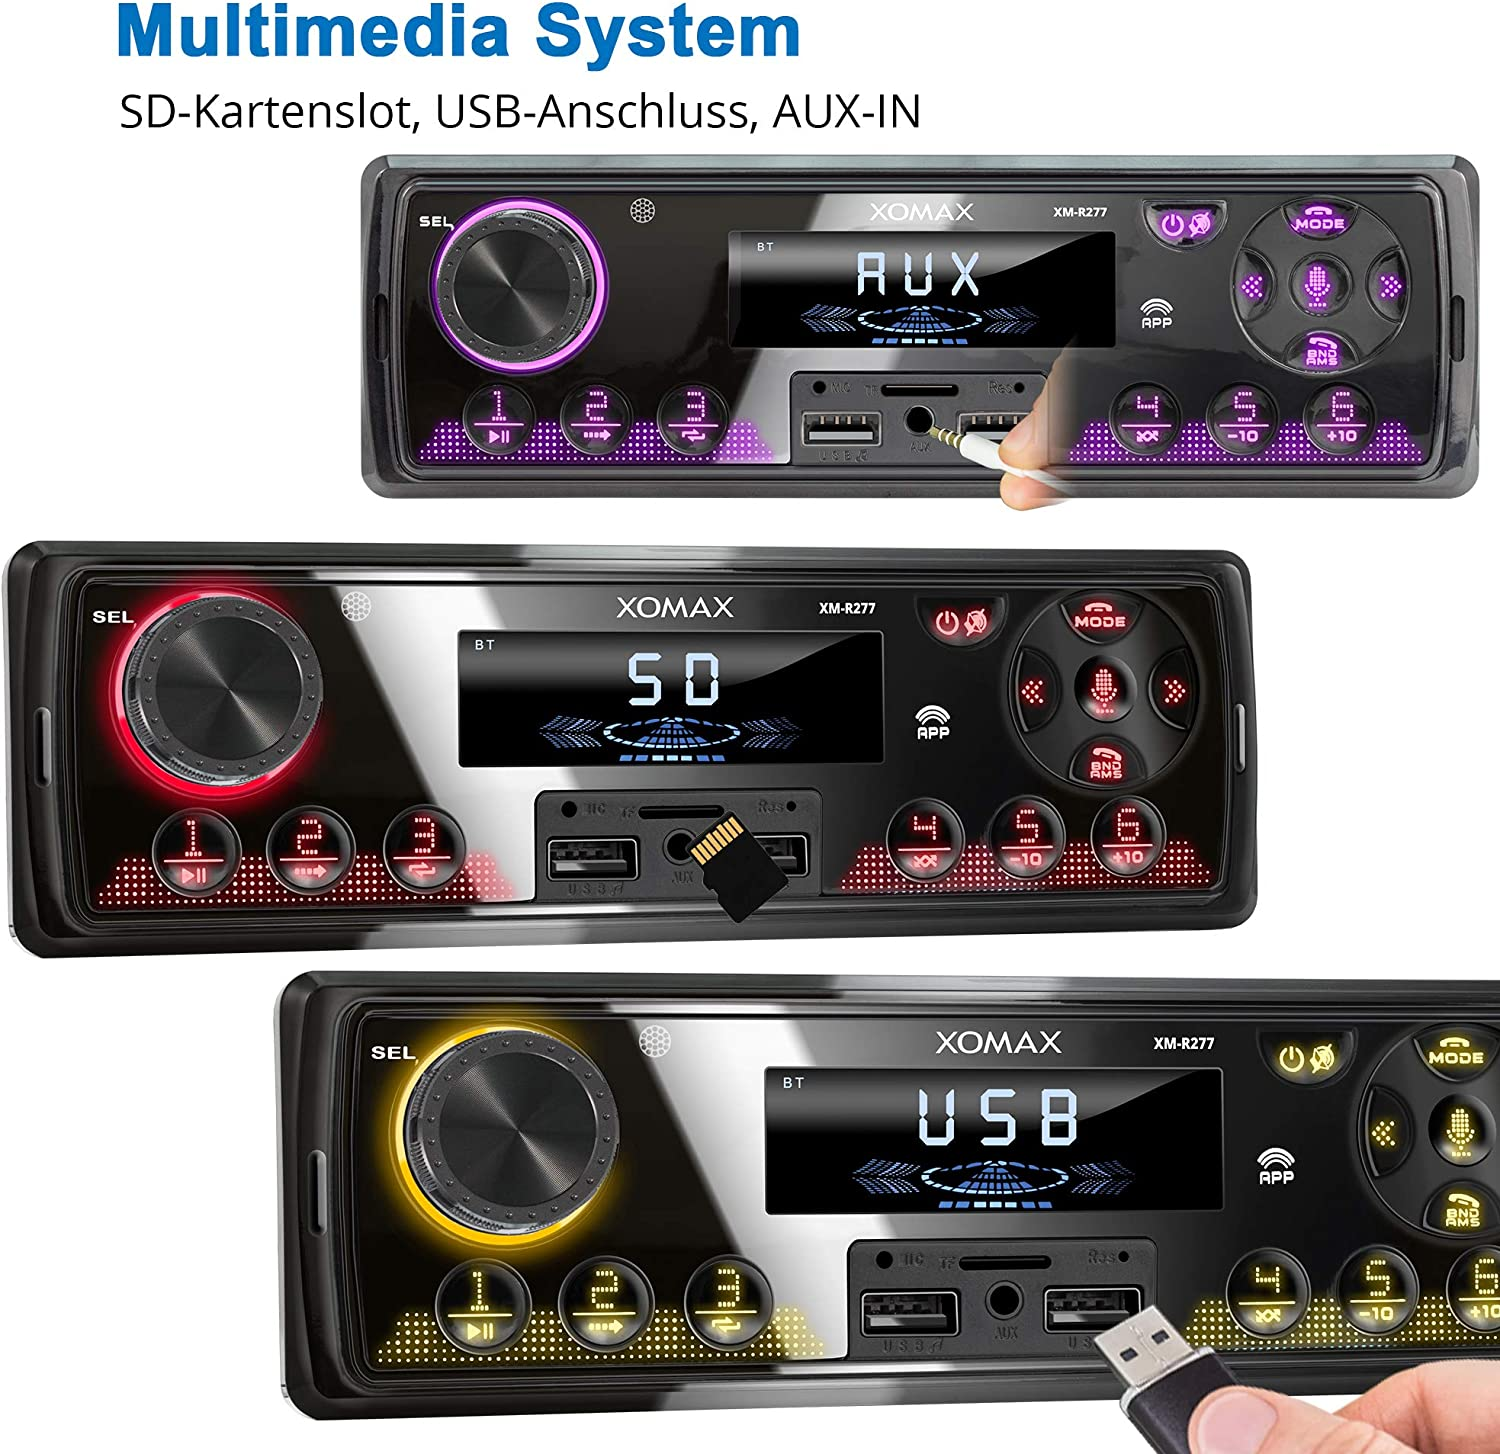 XOMAX XM-R277 Car Stereo with Bluetooth Hands-Free Function I FM I without CD drive I USB Port I MP3 WAV I AUX IN I DIN1 I Including Cage I SD Card Slot up to 128 GB up to 128 GB